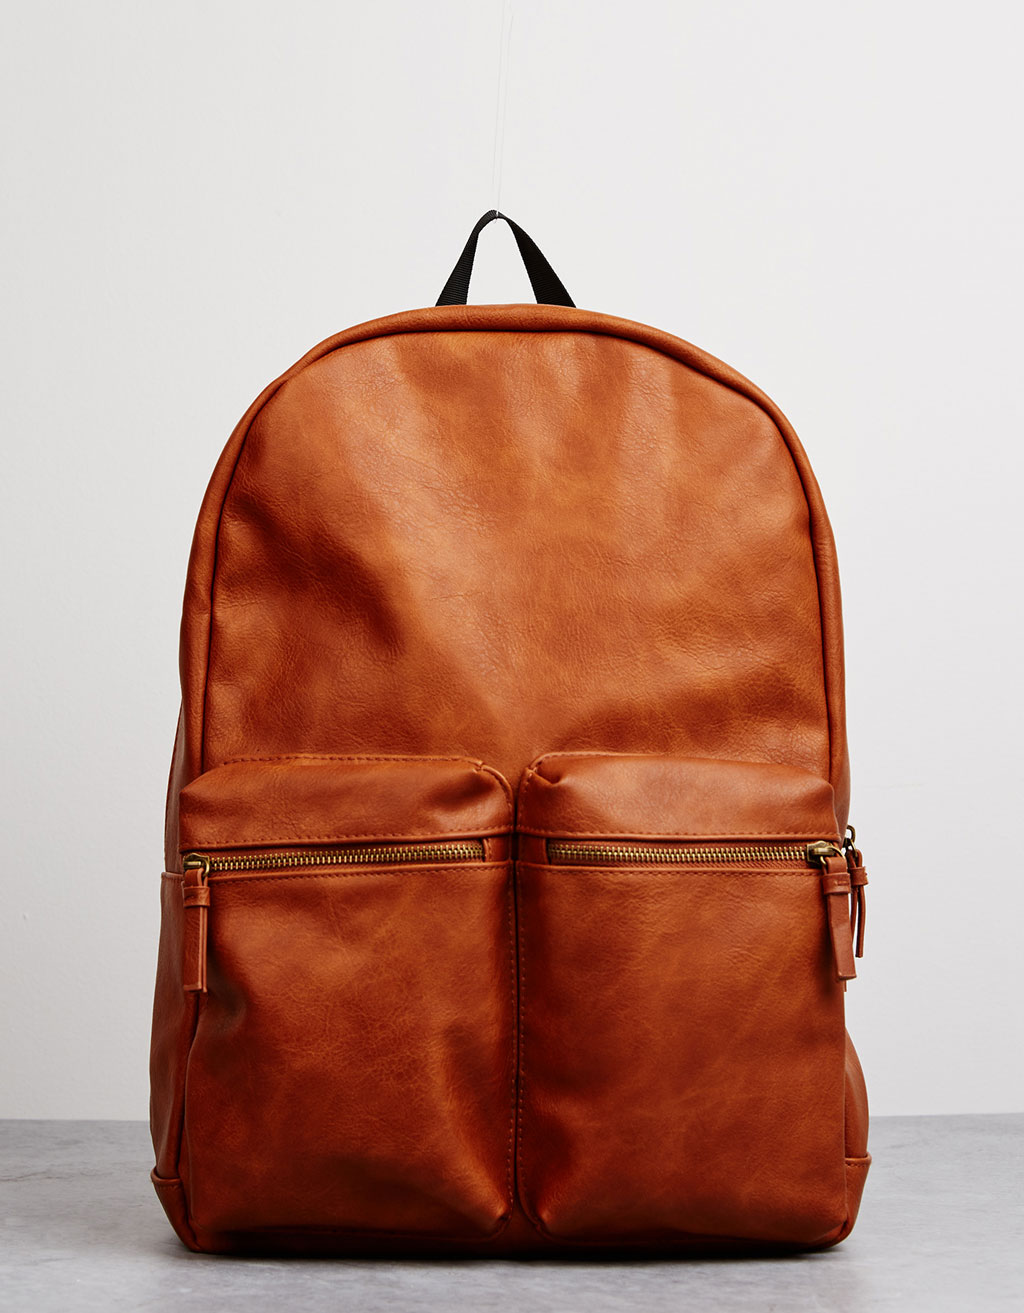 'Utility Pockets' backpack